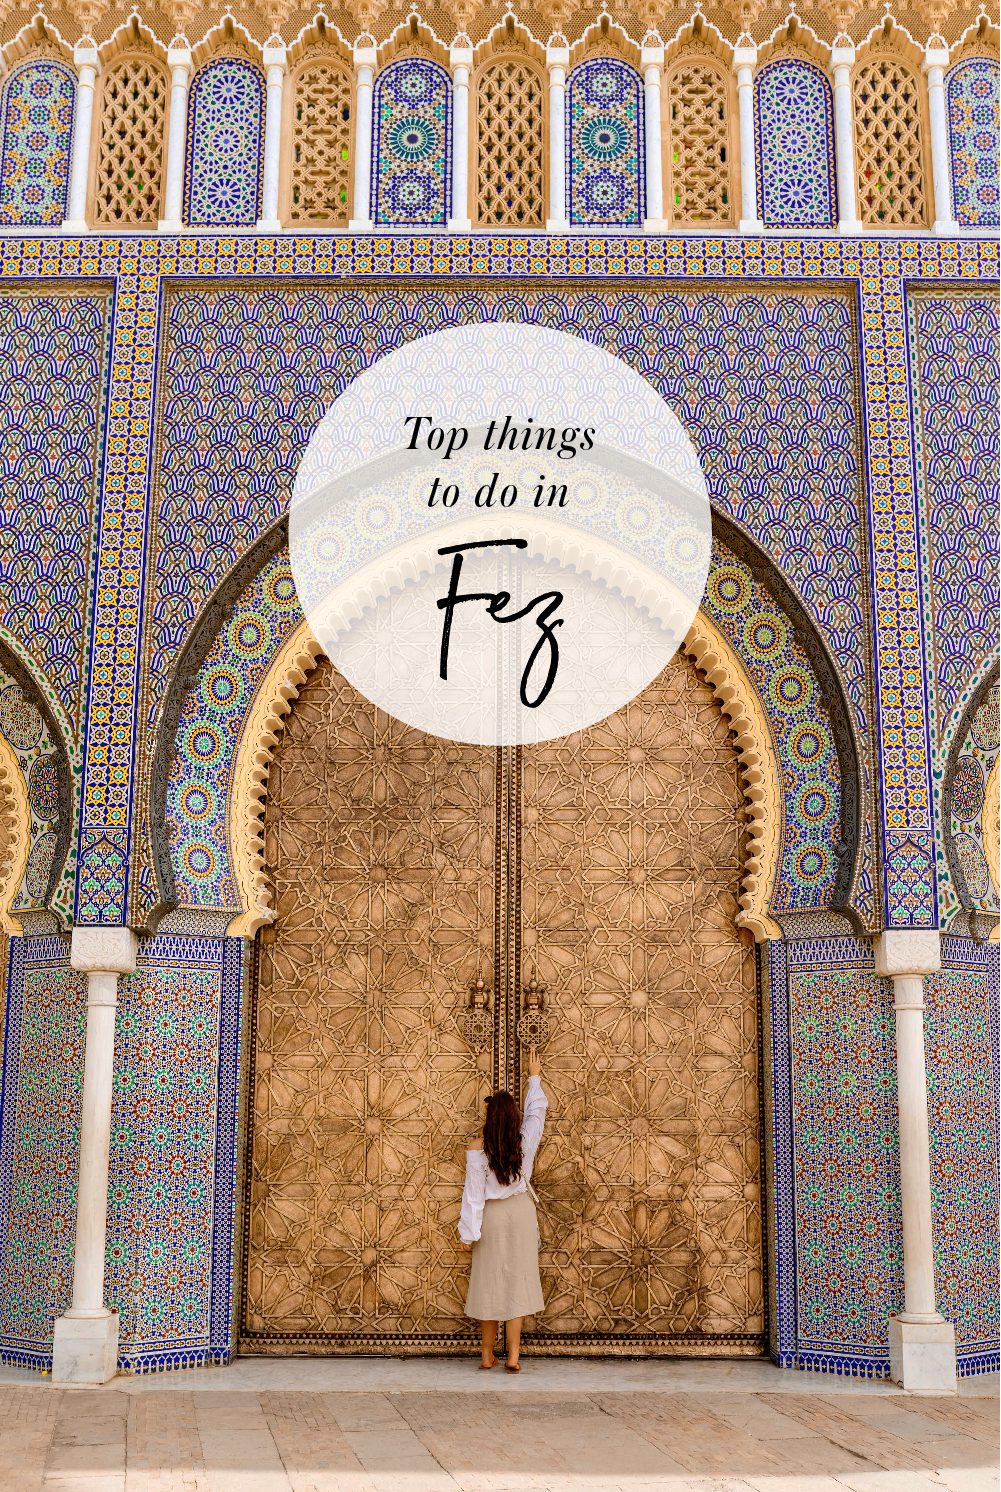 Top-things-to-do-in-Fez-Bucket-list-kelseyinlondon-Kelsey-Heinrichs--What-to-do-in-Fez--Where-to-go-in-Fez-top-places-in-Fez-2